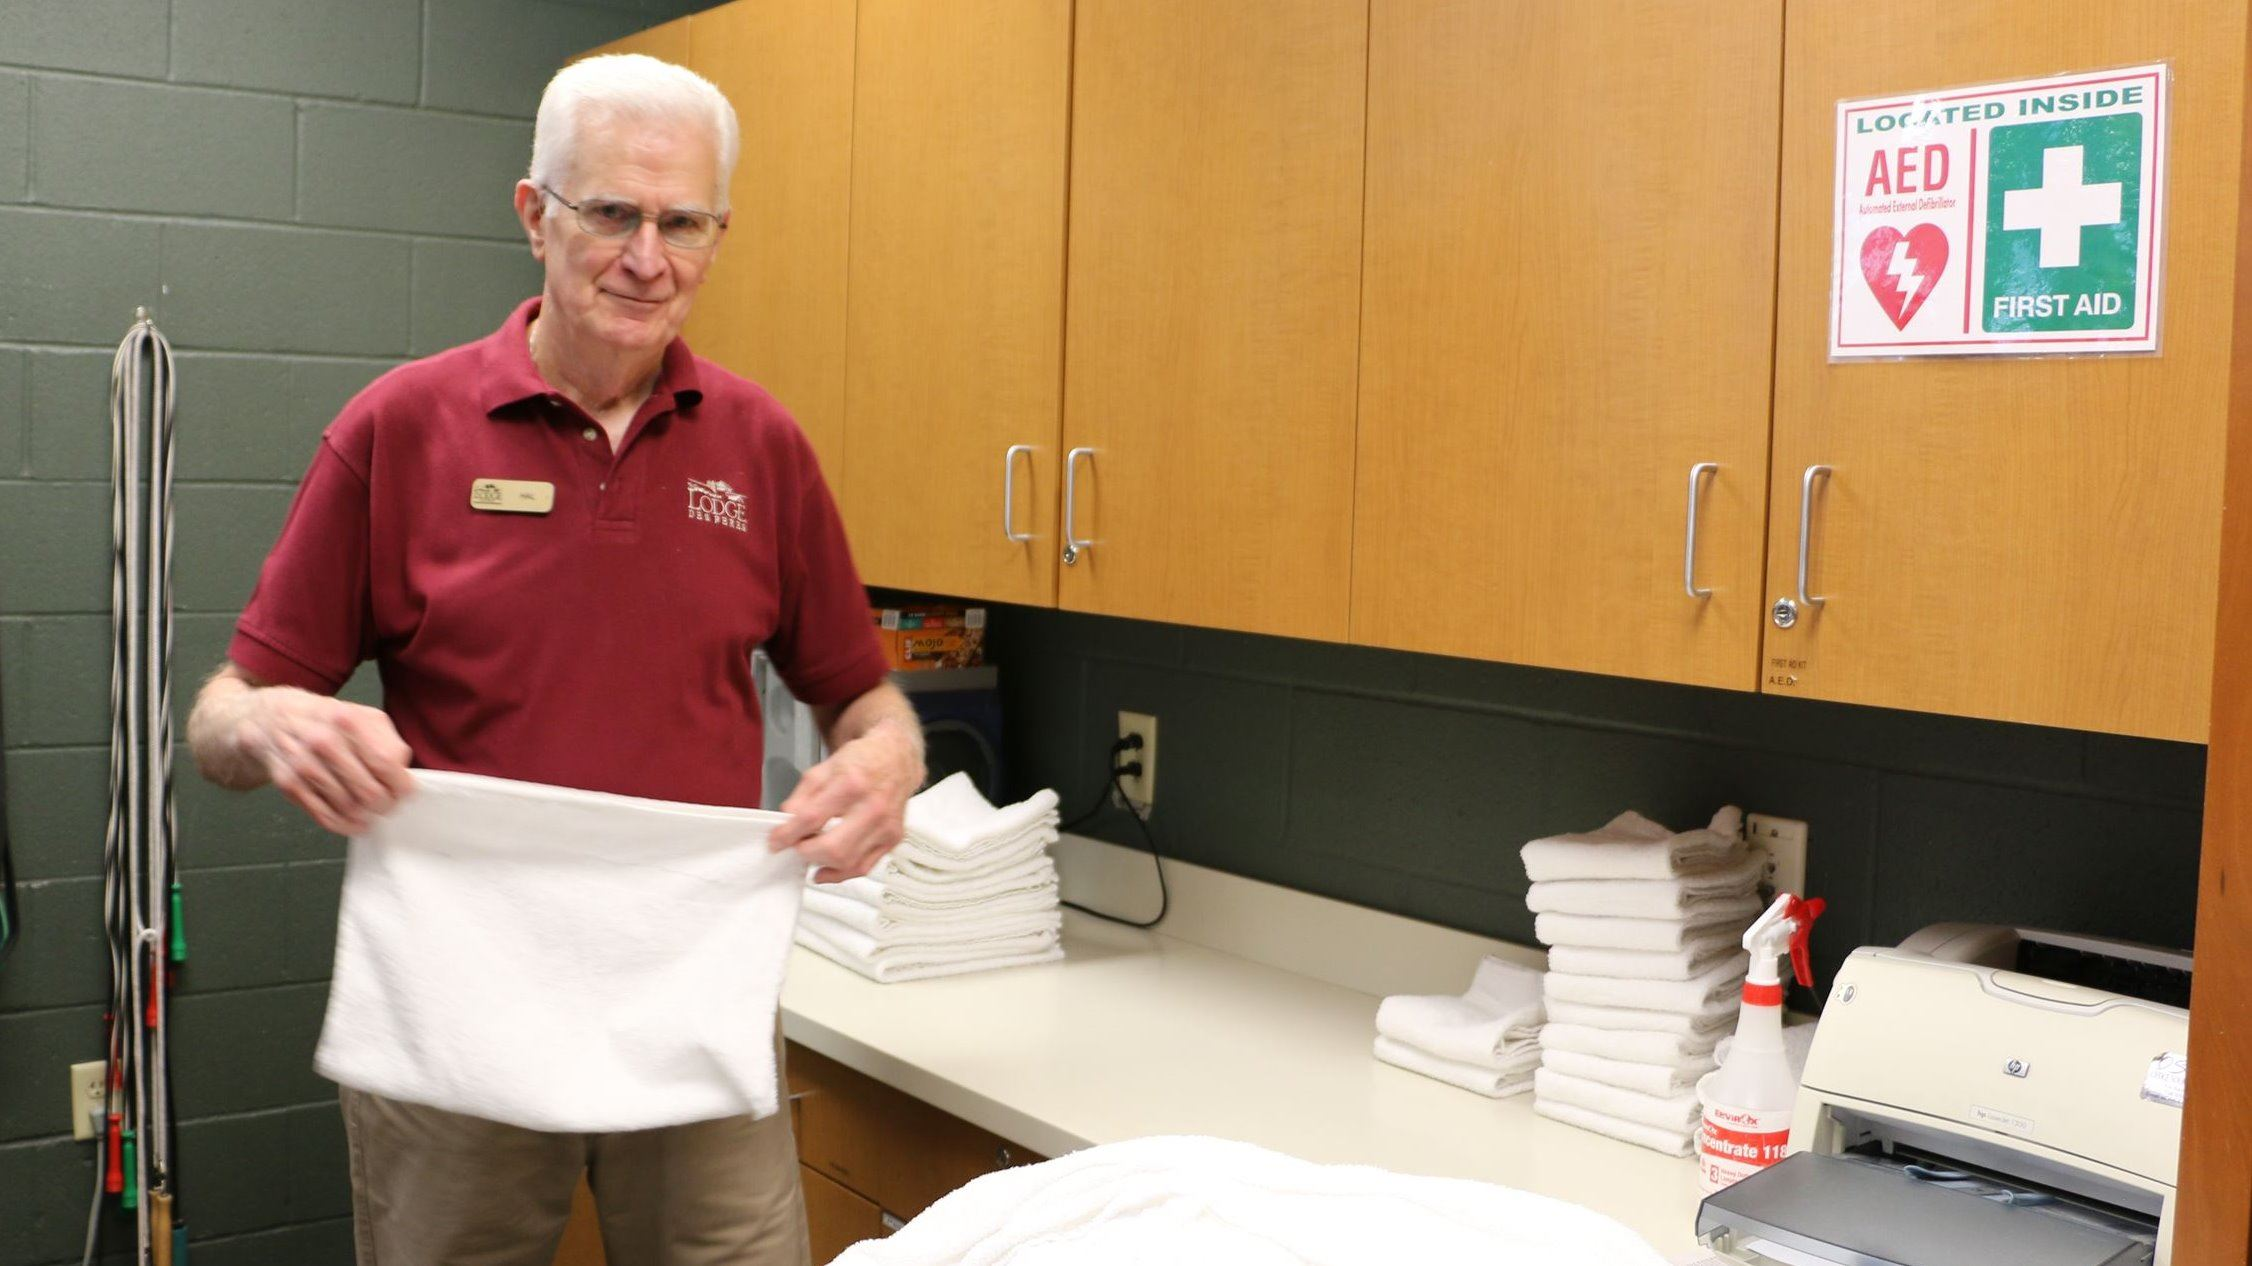 hal huber folding towels (2)